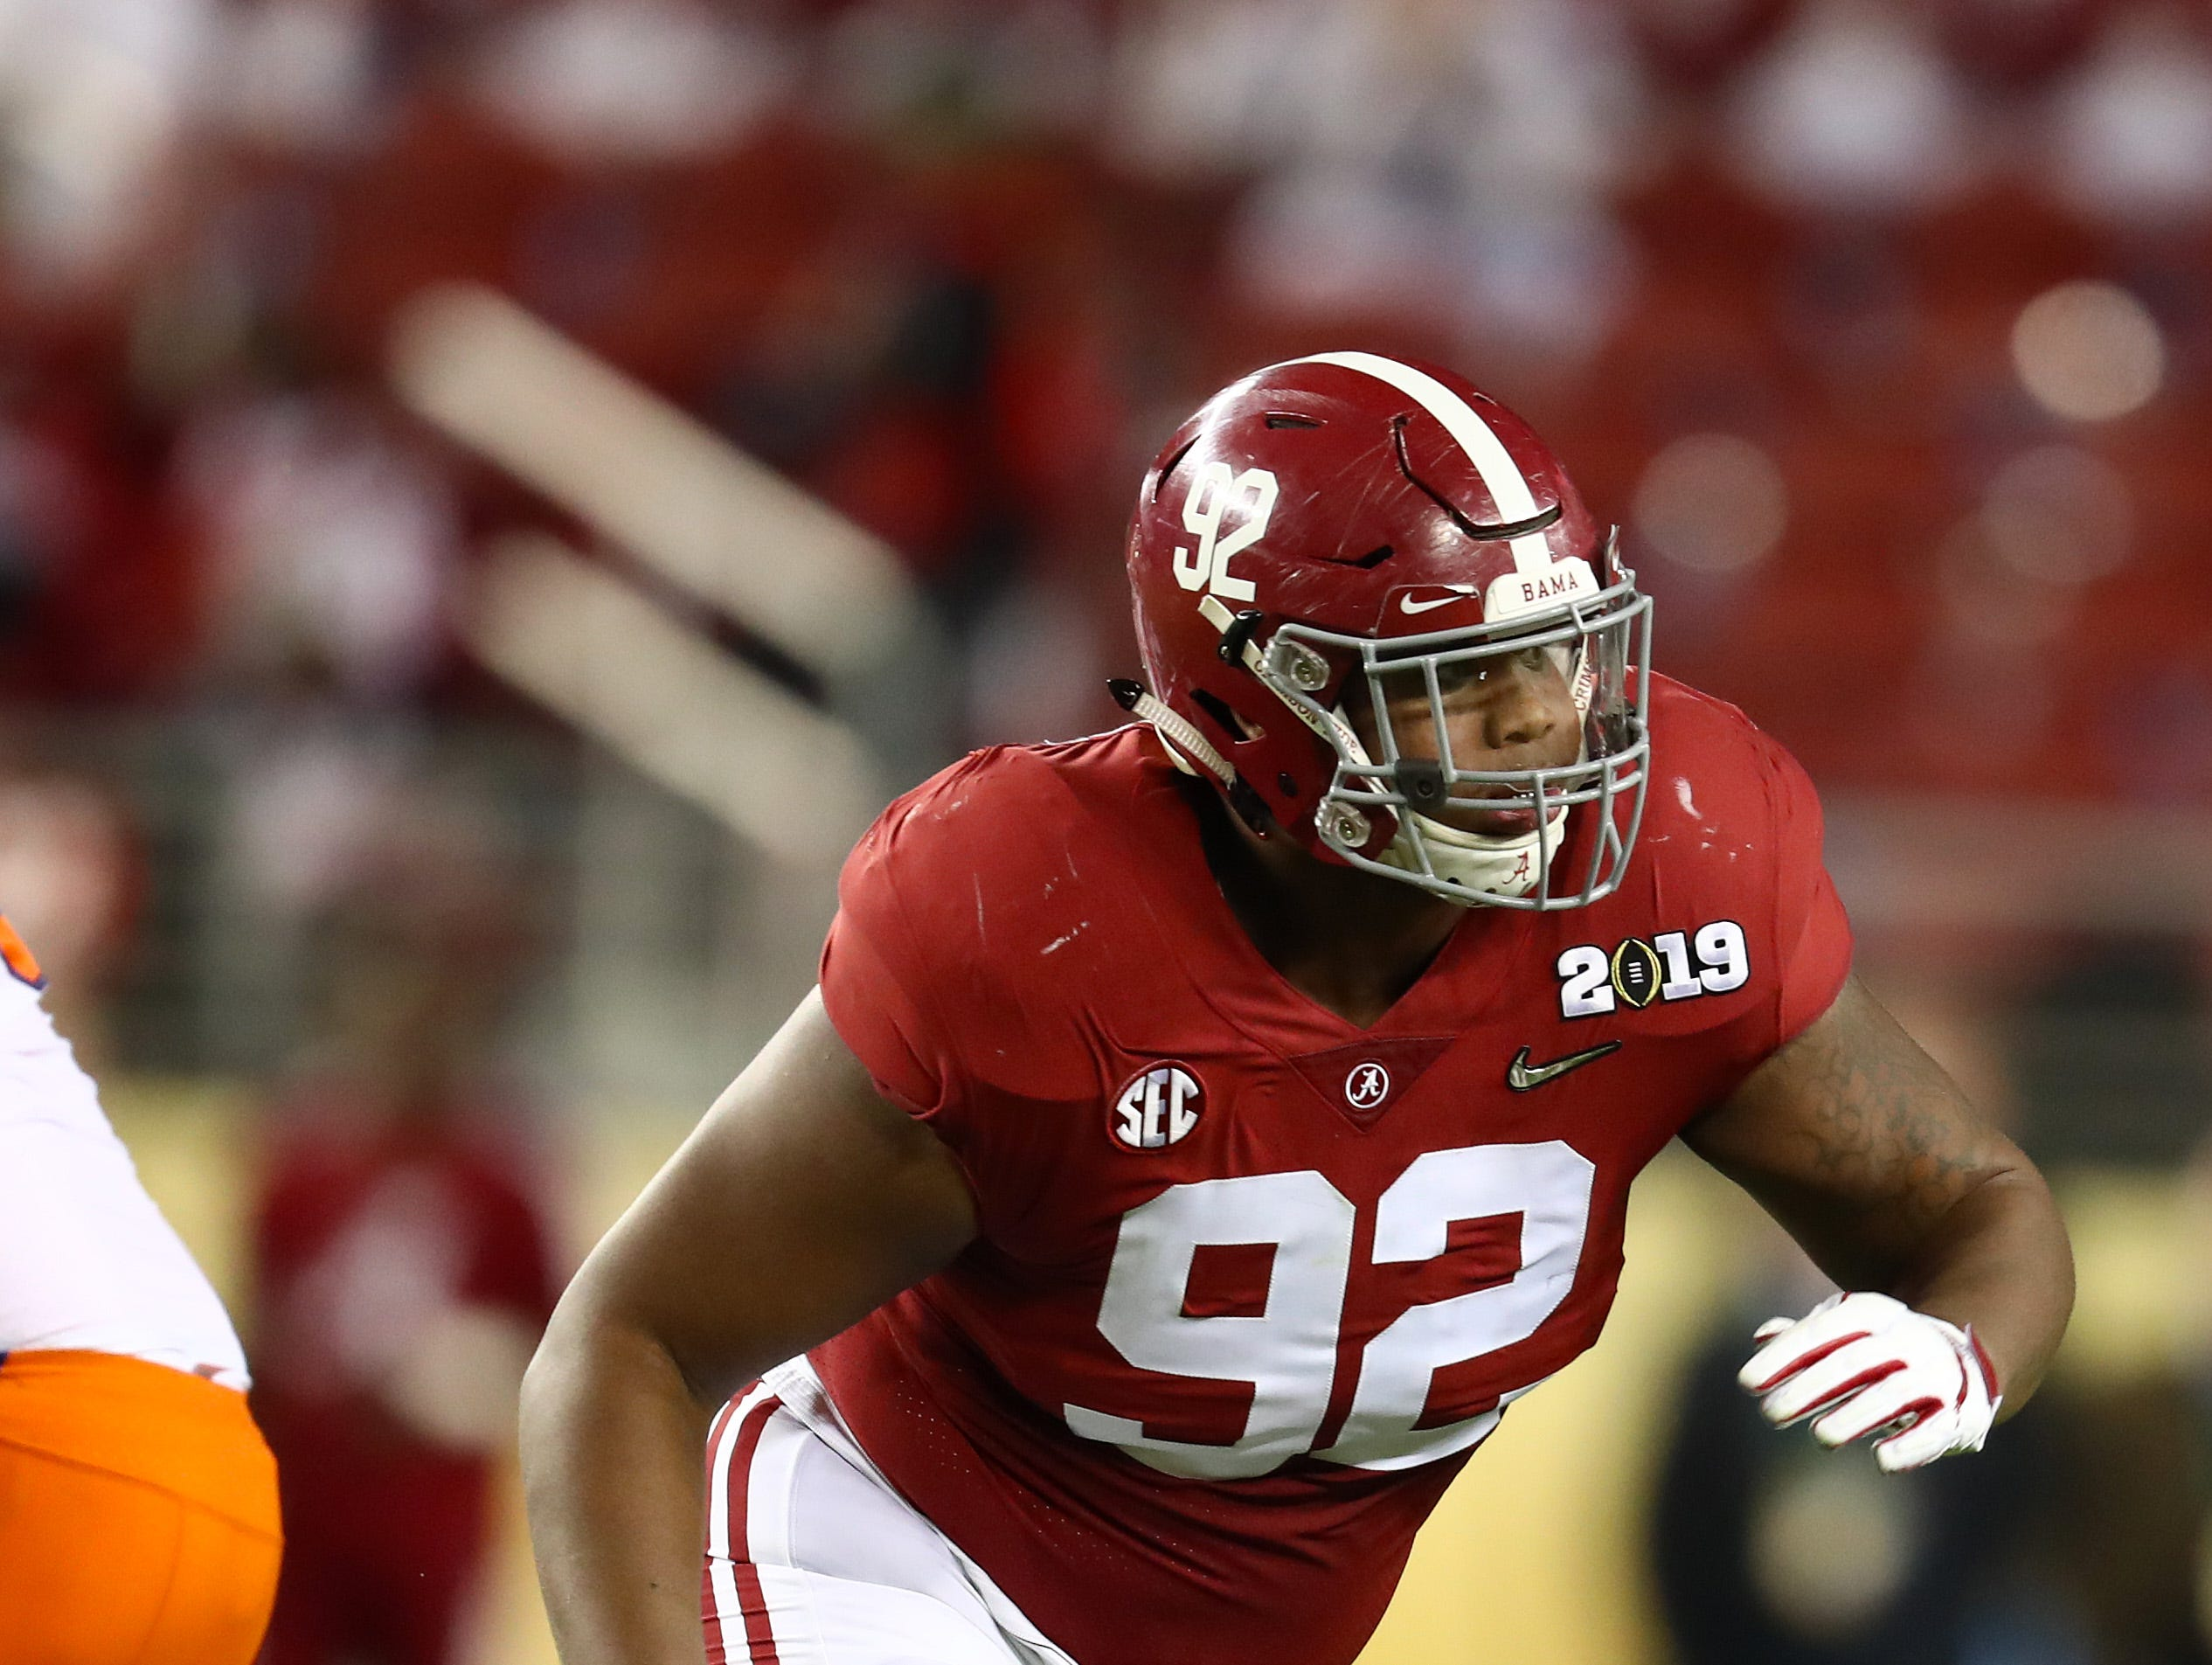 Alabama Crimson Tide defensive tackle Quinnen Williams (92) in action against the Clemson Tigers during the 2019 College Football Playoff Championship game at Levi's Stadium.